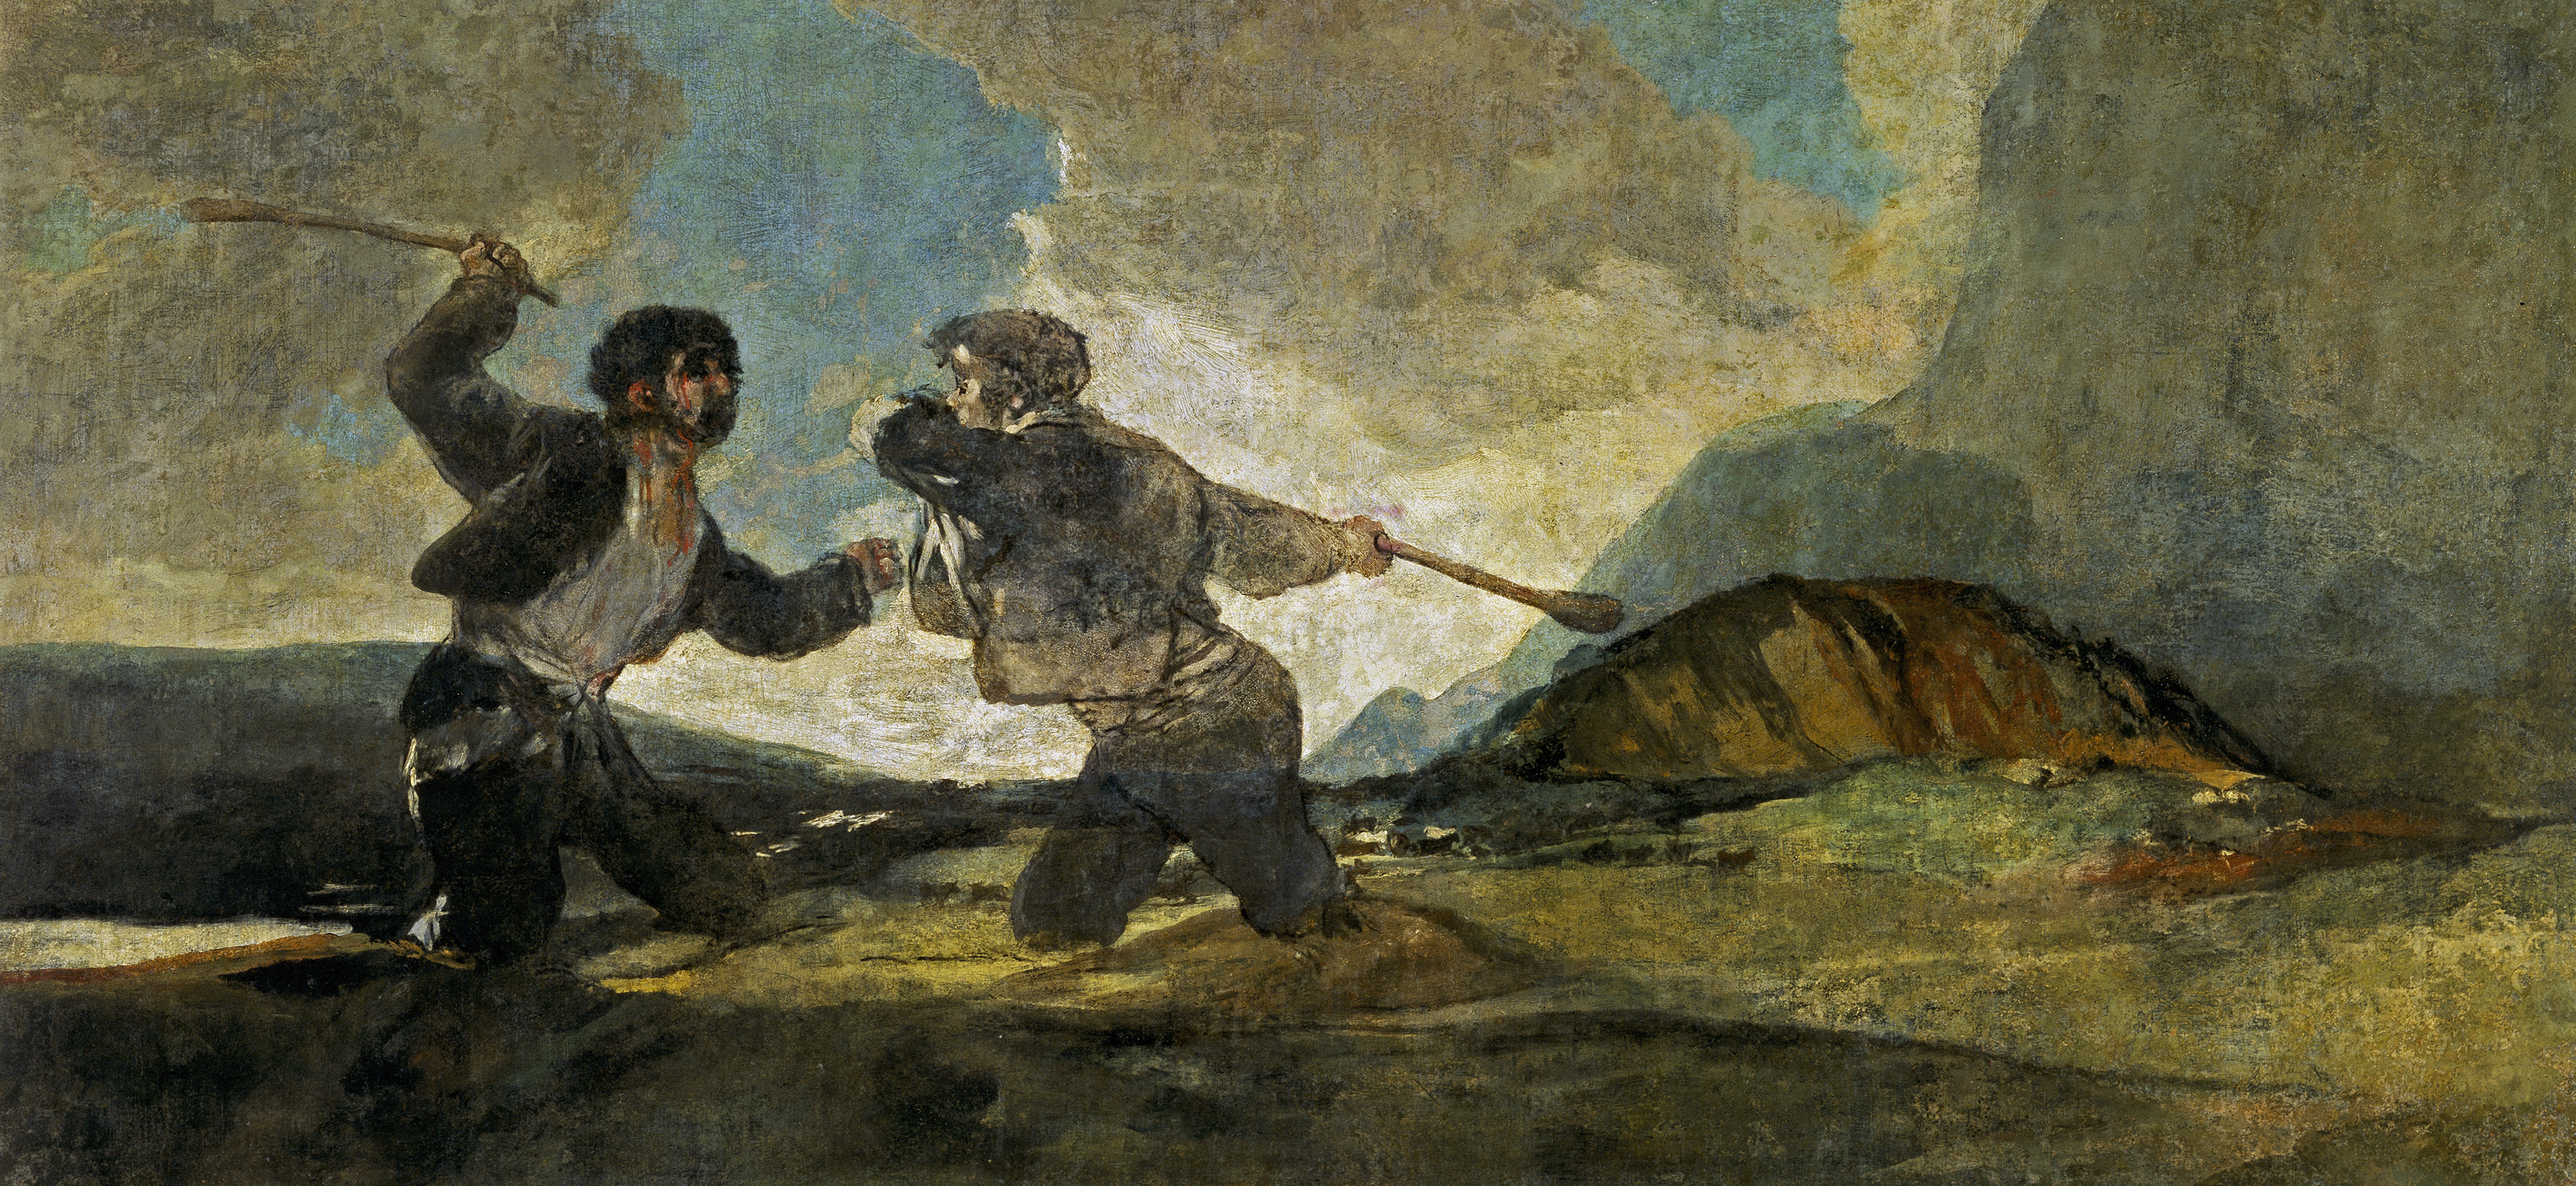 Two guys fighting in a mire with cudgels